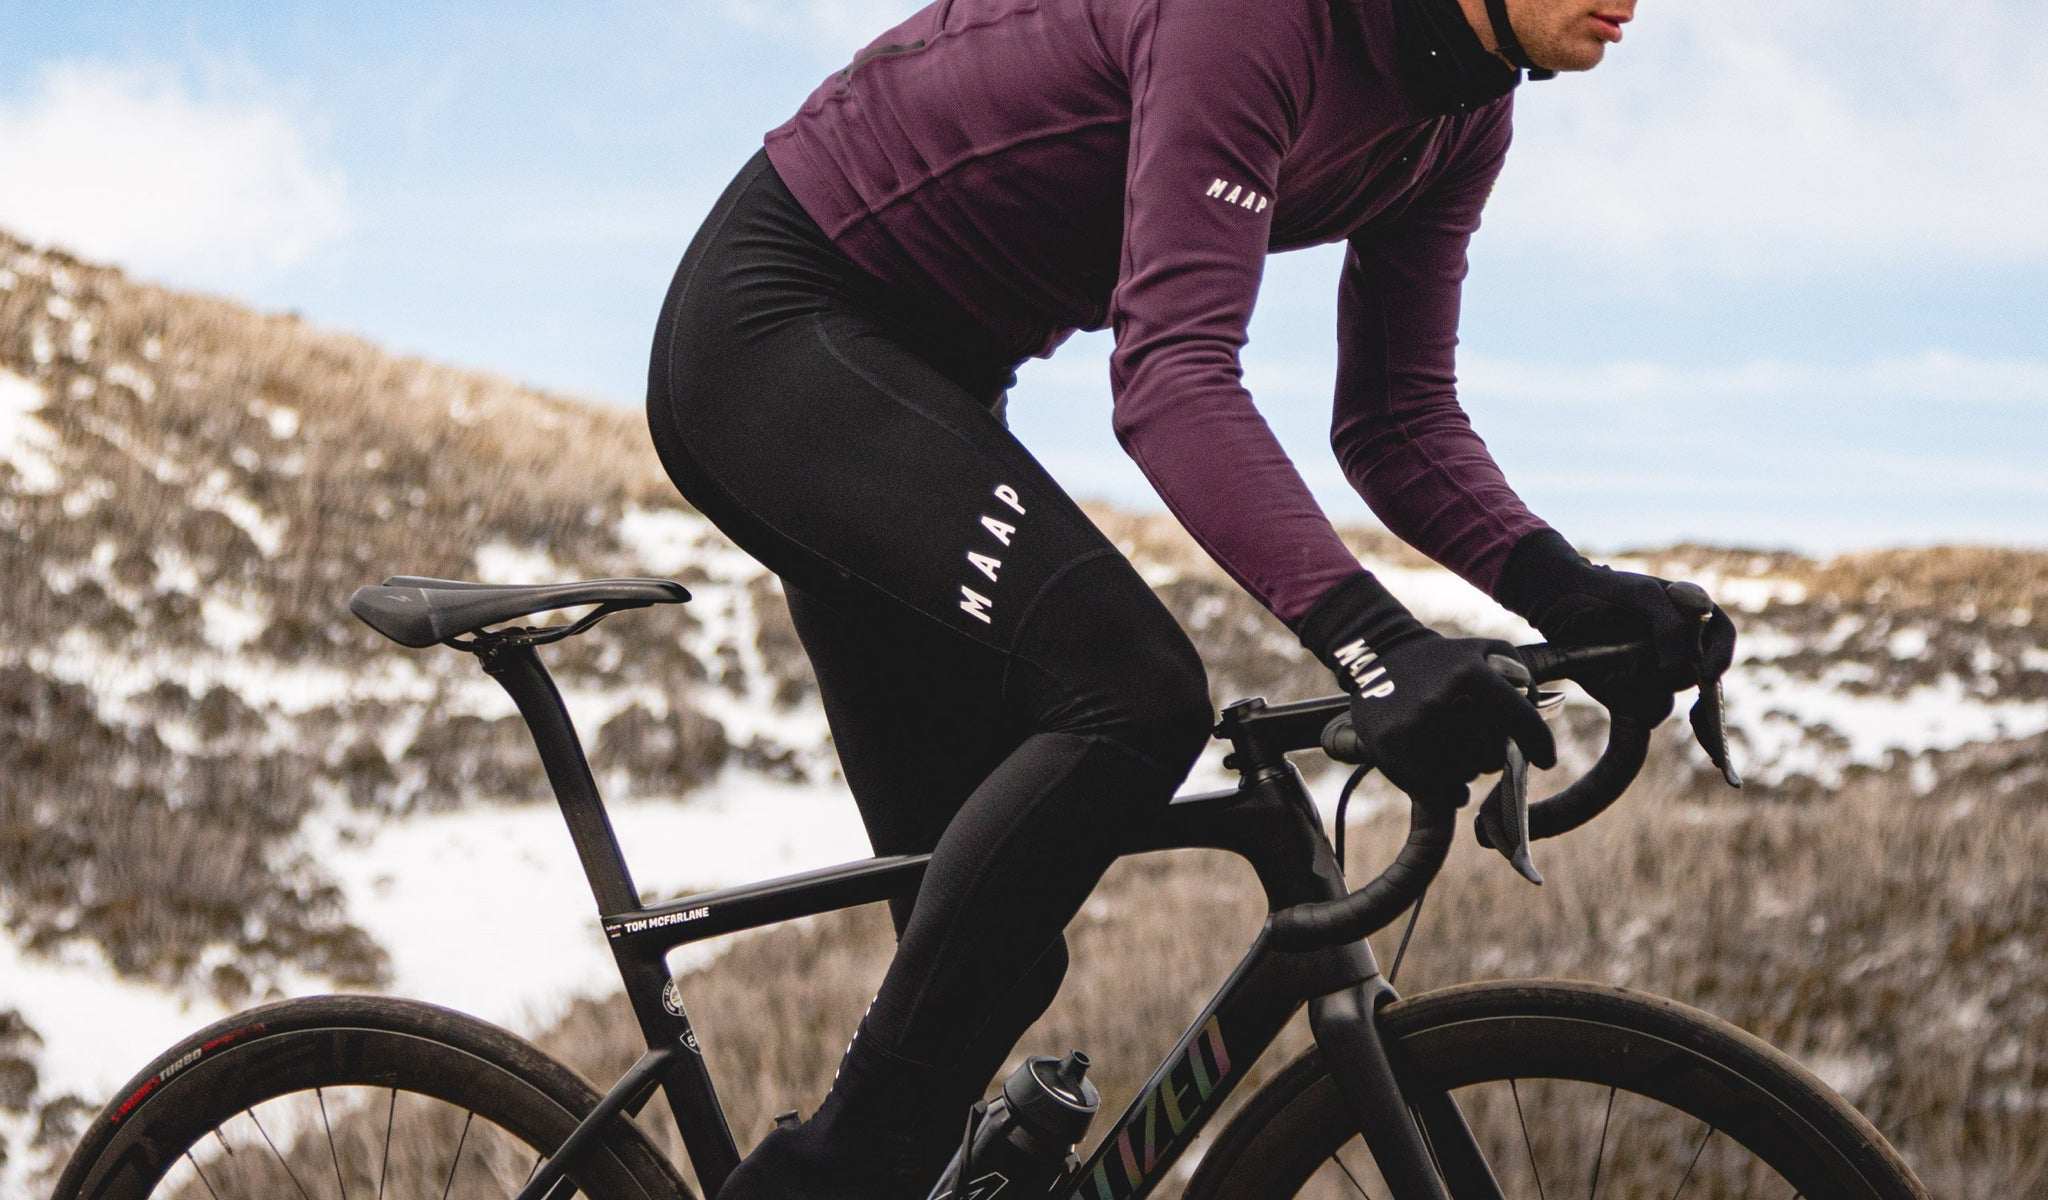 Winter cycling bib tights for the coldest conditions.